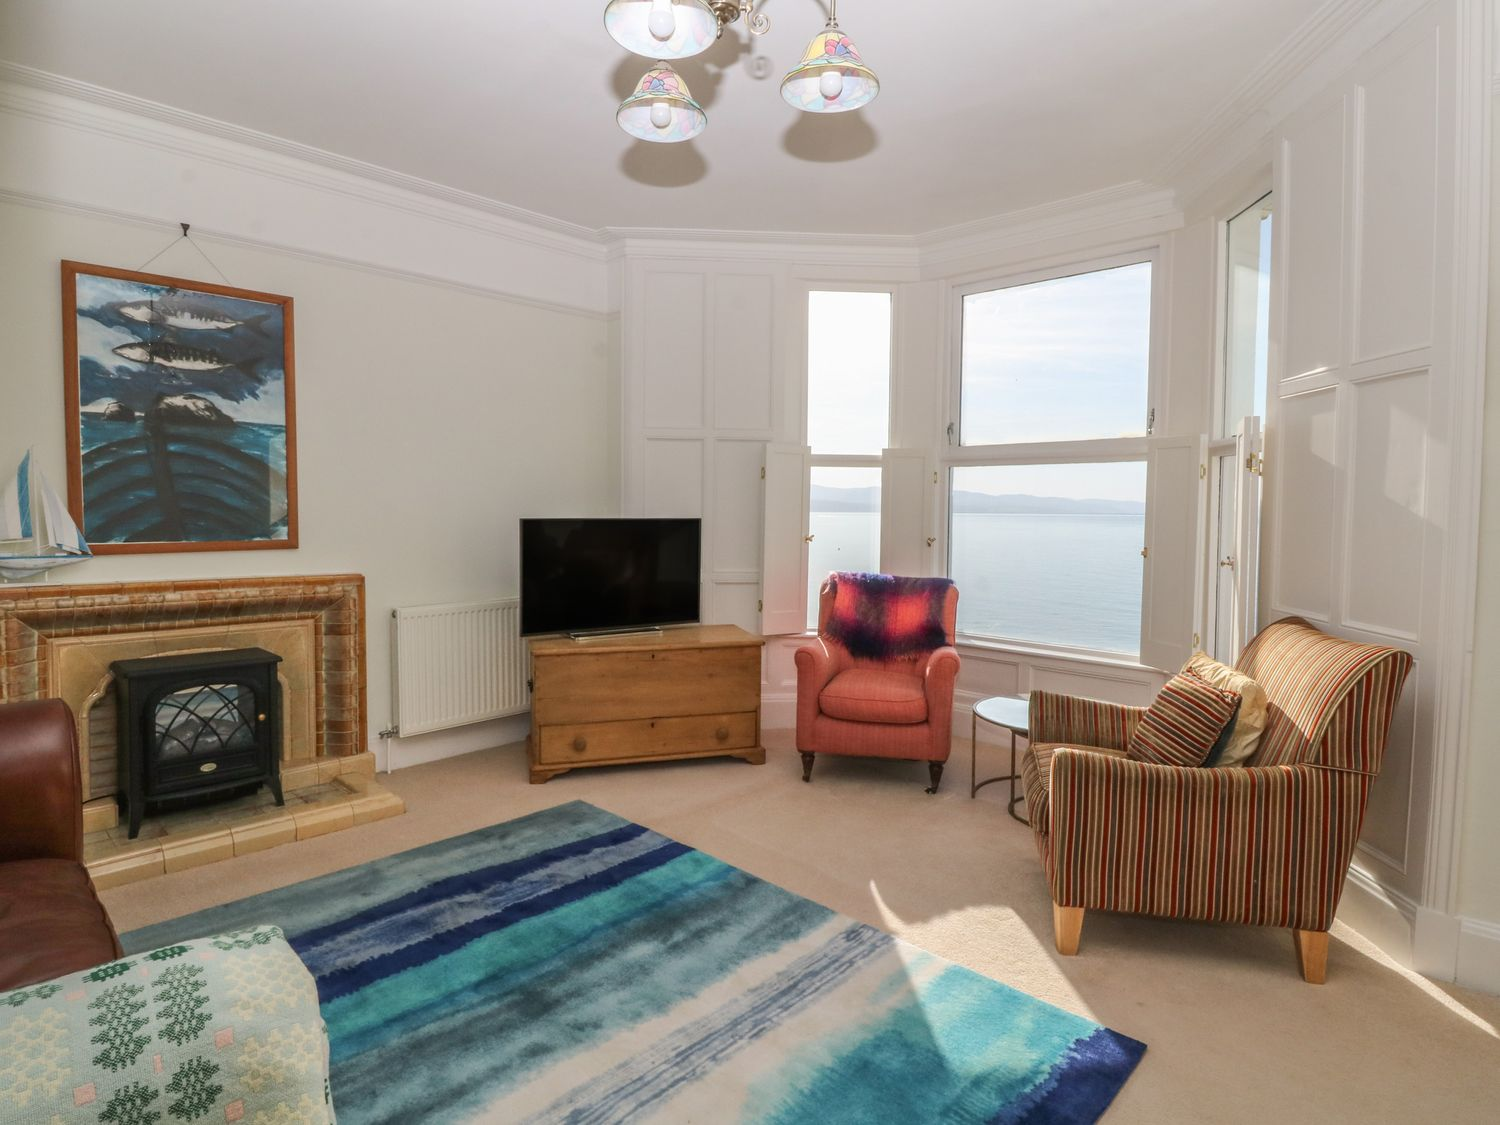 11 Marine Terrace in Criccieth - sleeps 4 people